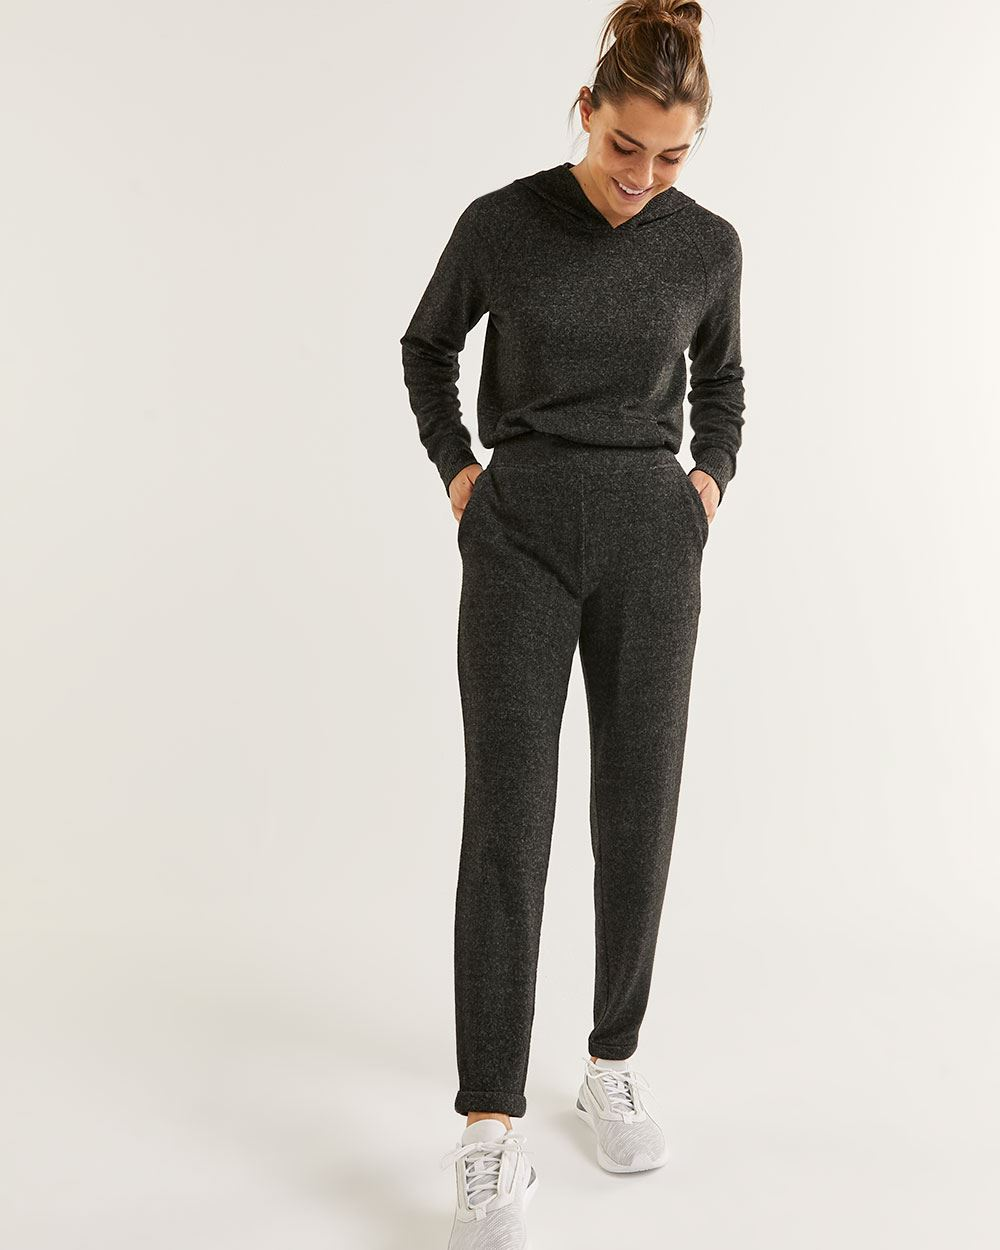 Brushed Knit Jogger Pants Hyba